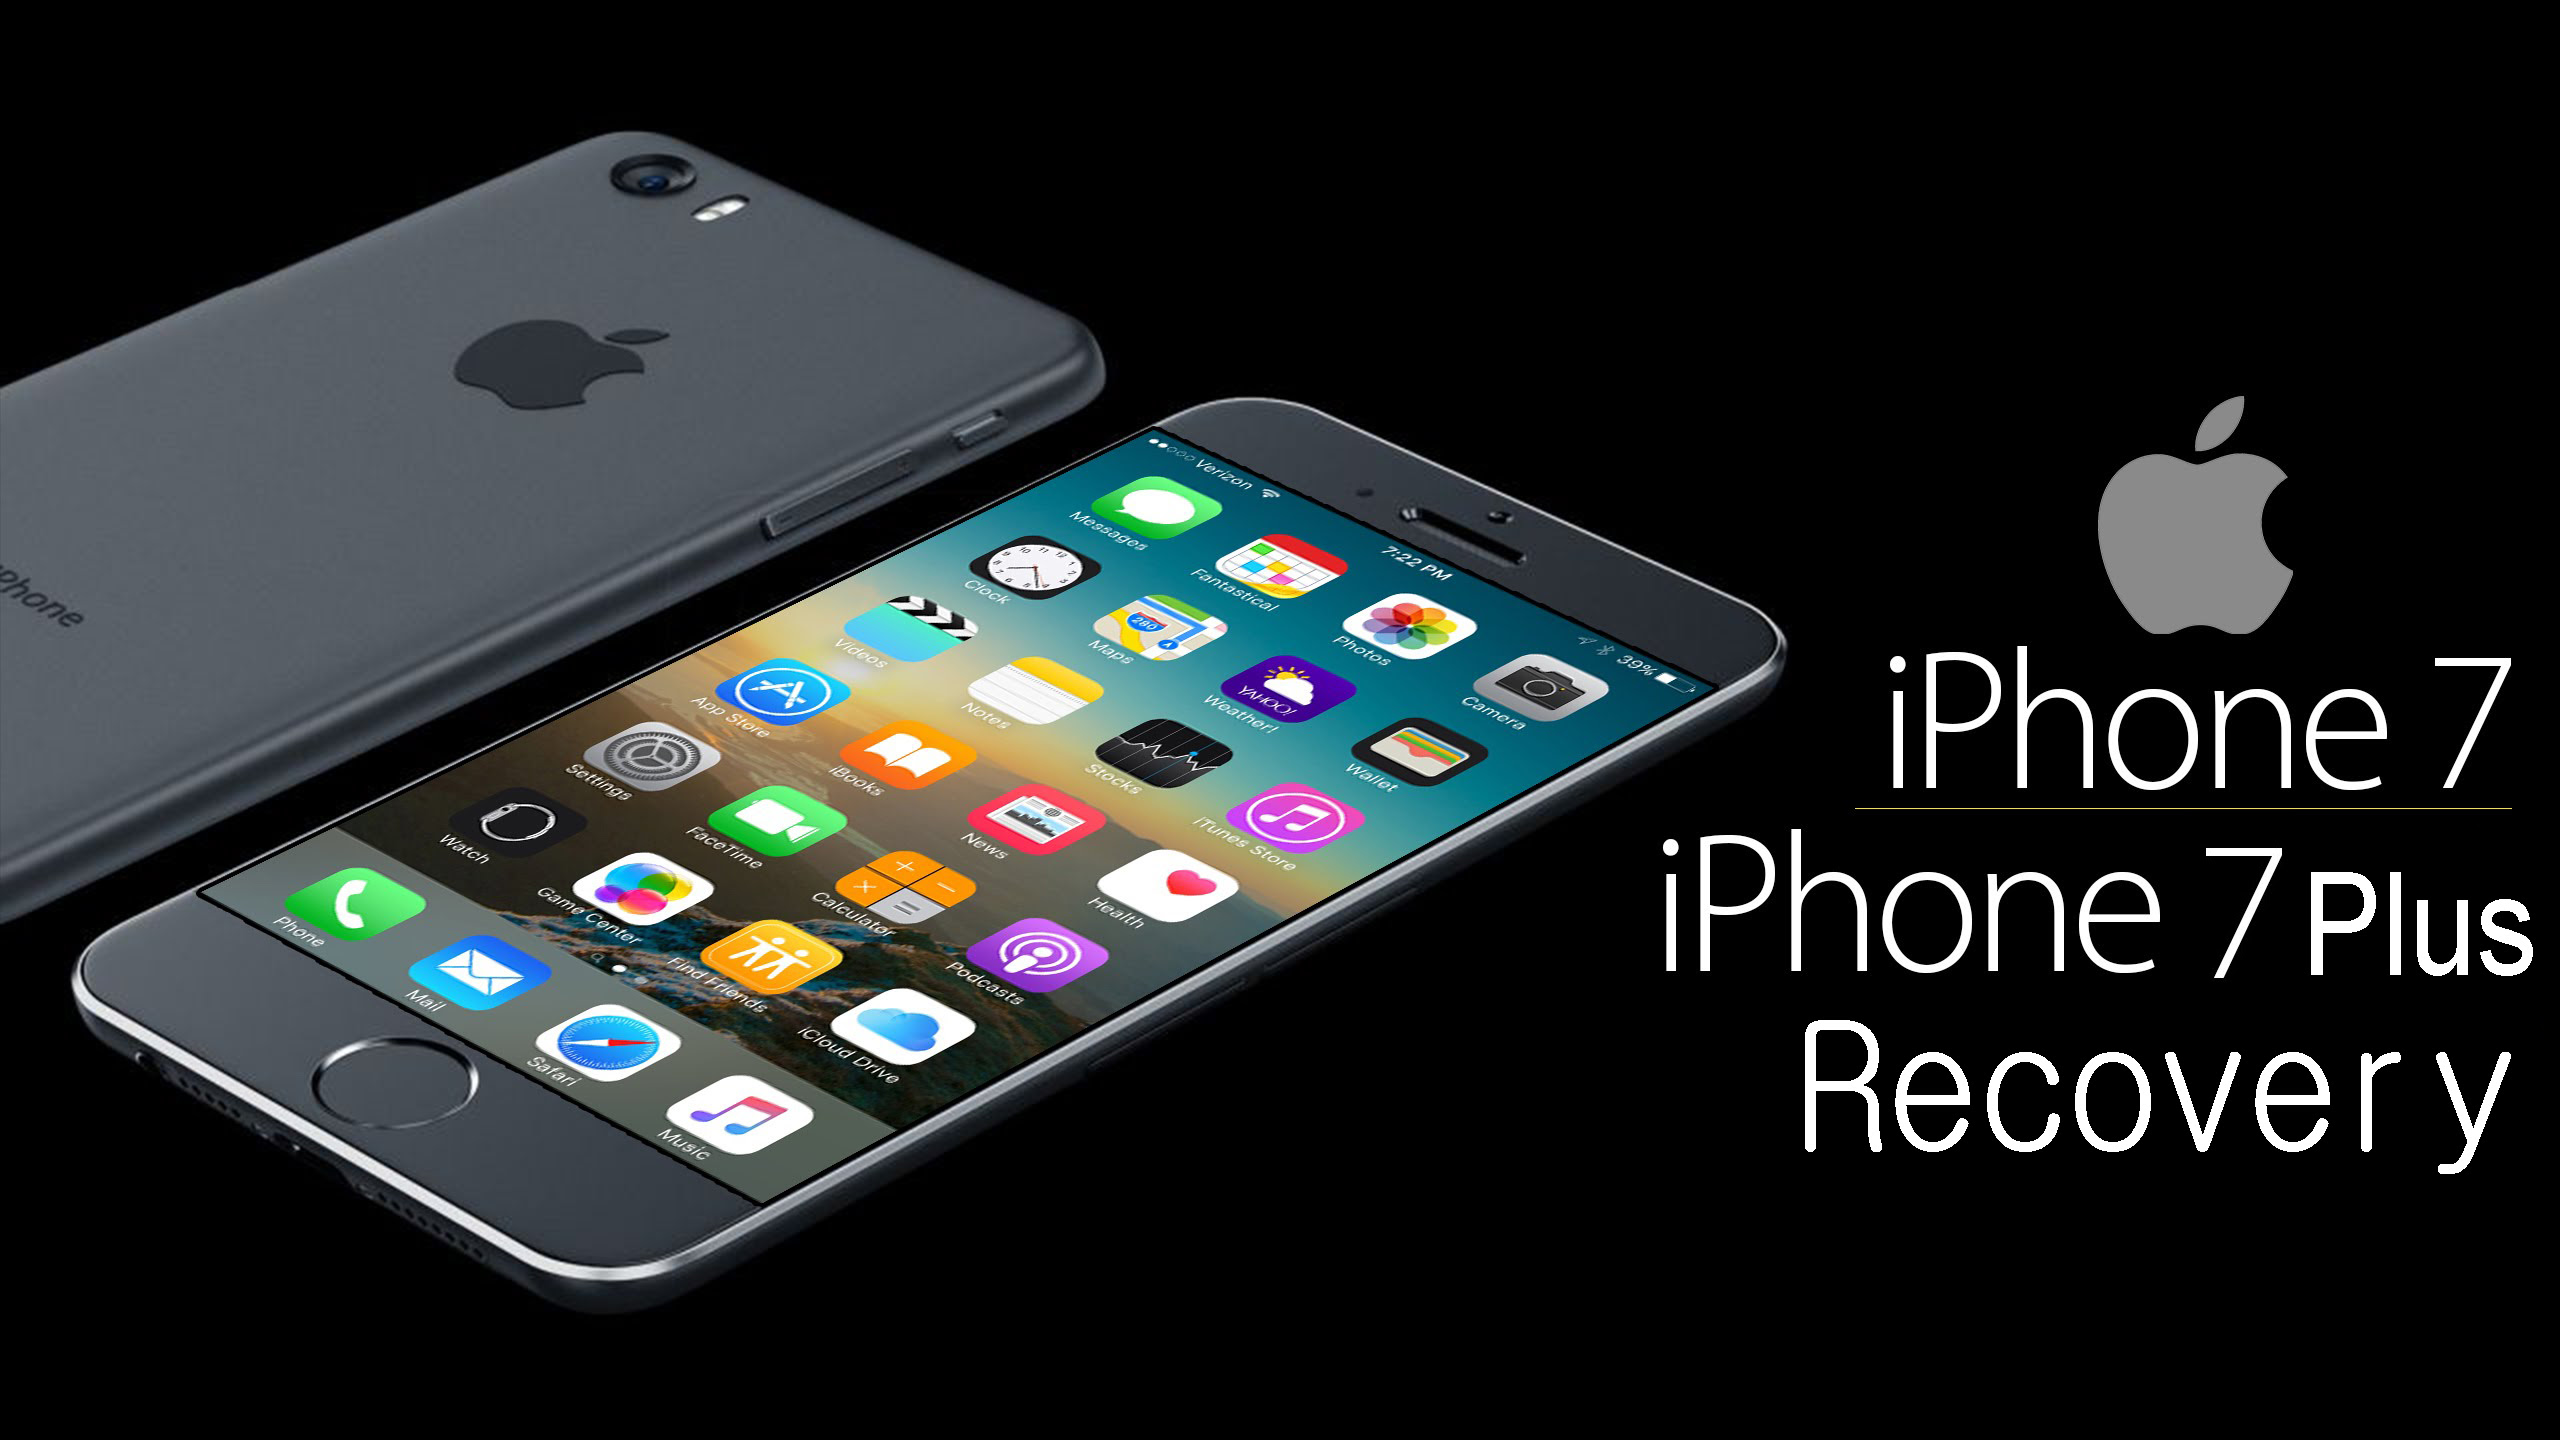 3 Ways To Recover Lost or Deleted Data From iPhone 7\/7 Plus